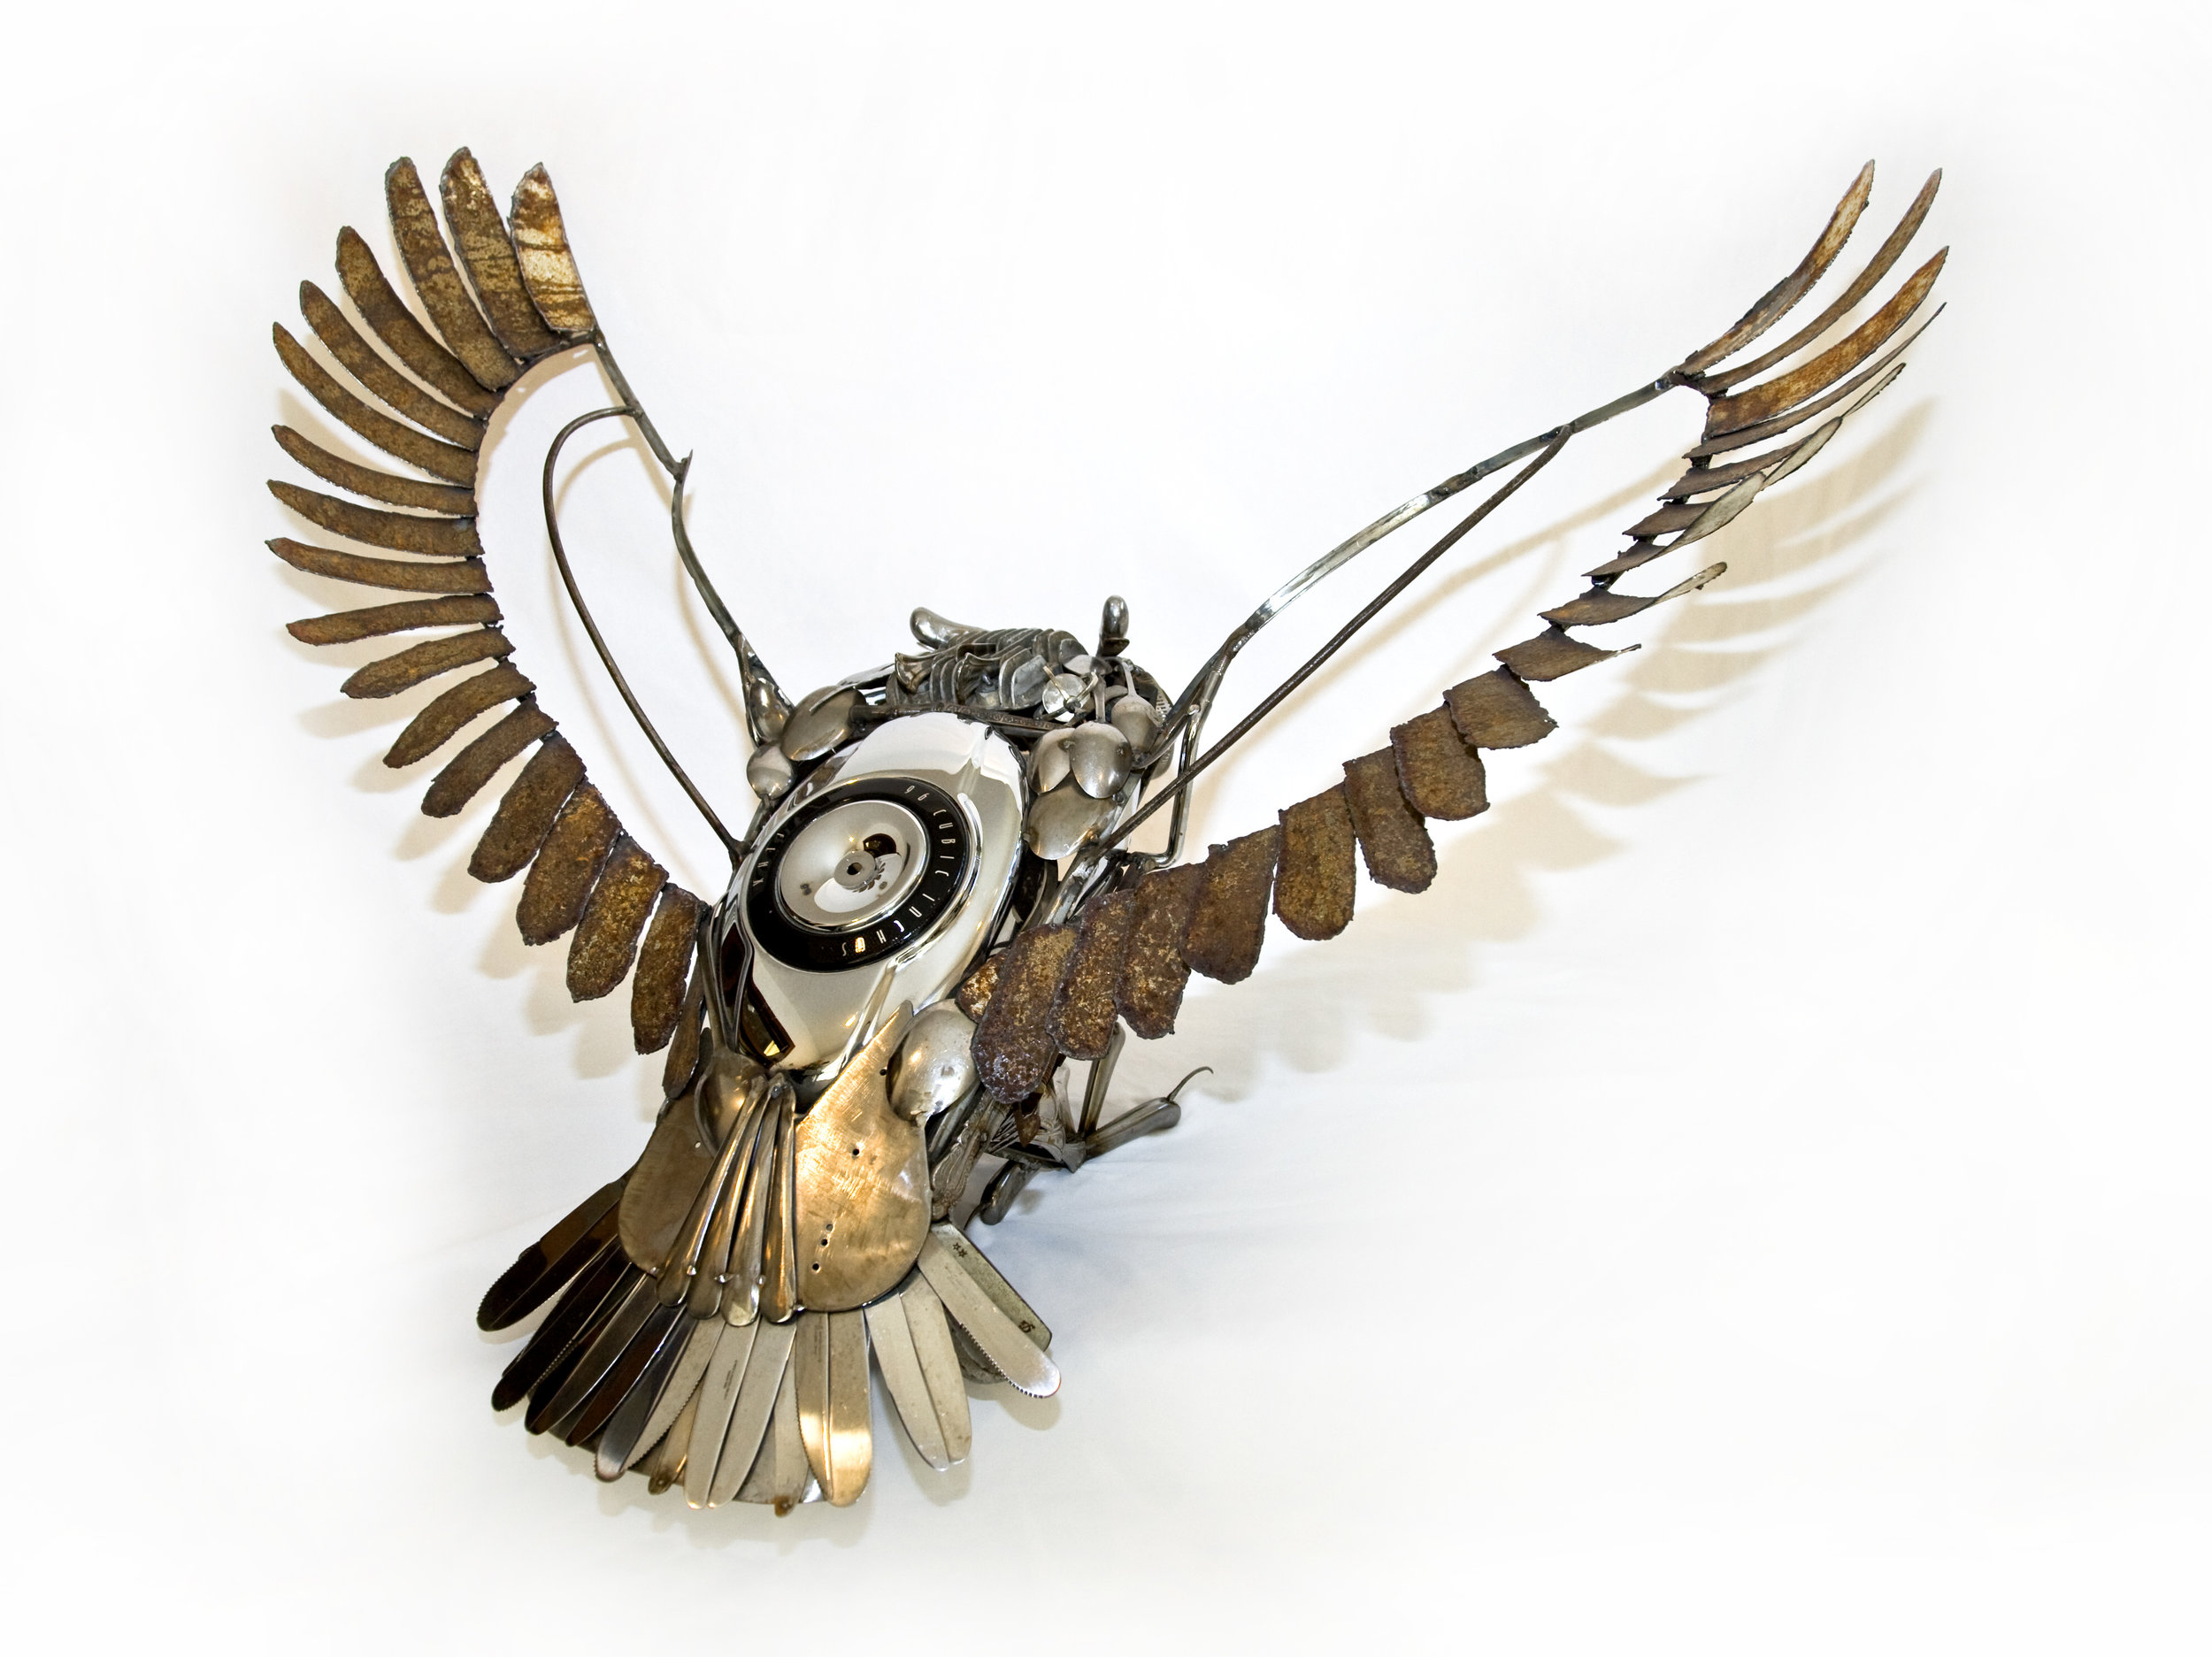 "There are many more items on ""Jim's Owl"" and each one has its own story to tell. A collection of memories from the past united together, they take on the form of the wise, fearless, courageous owl...which is how she sees the man whom she married."